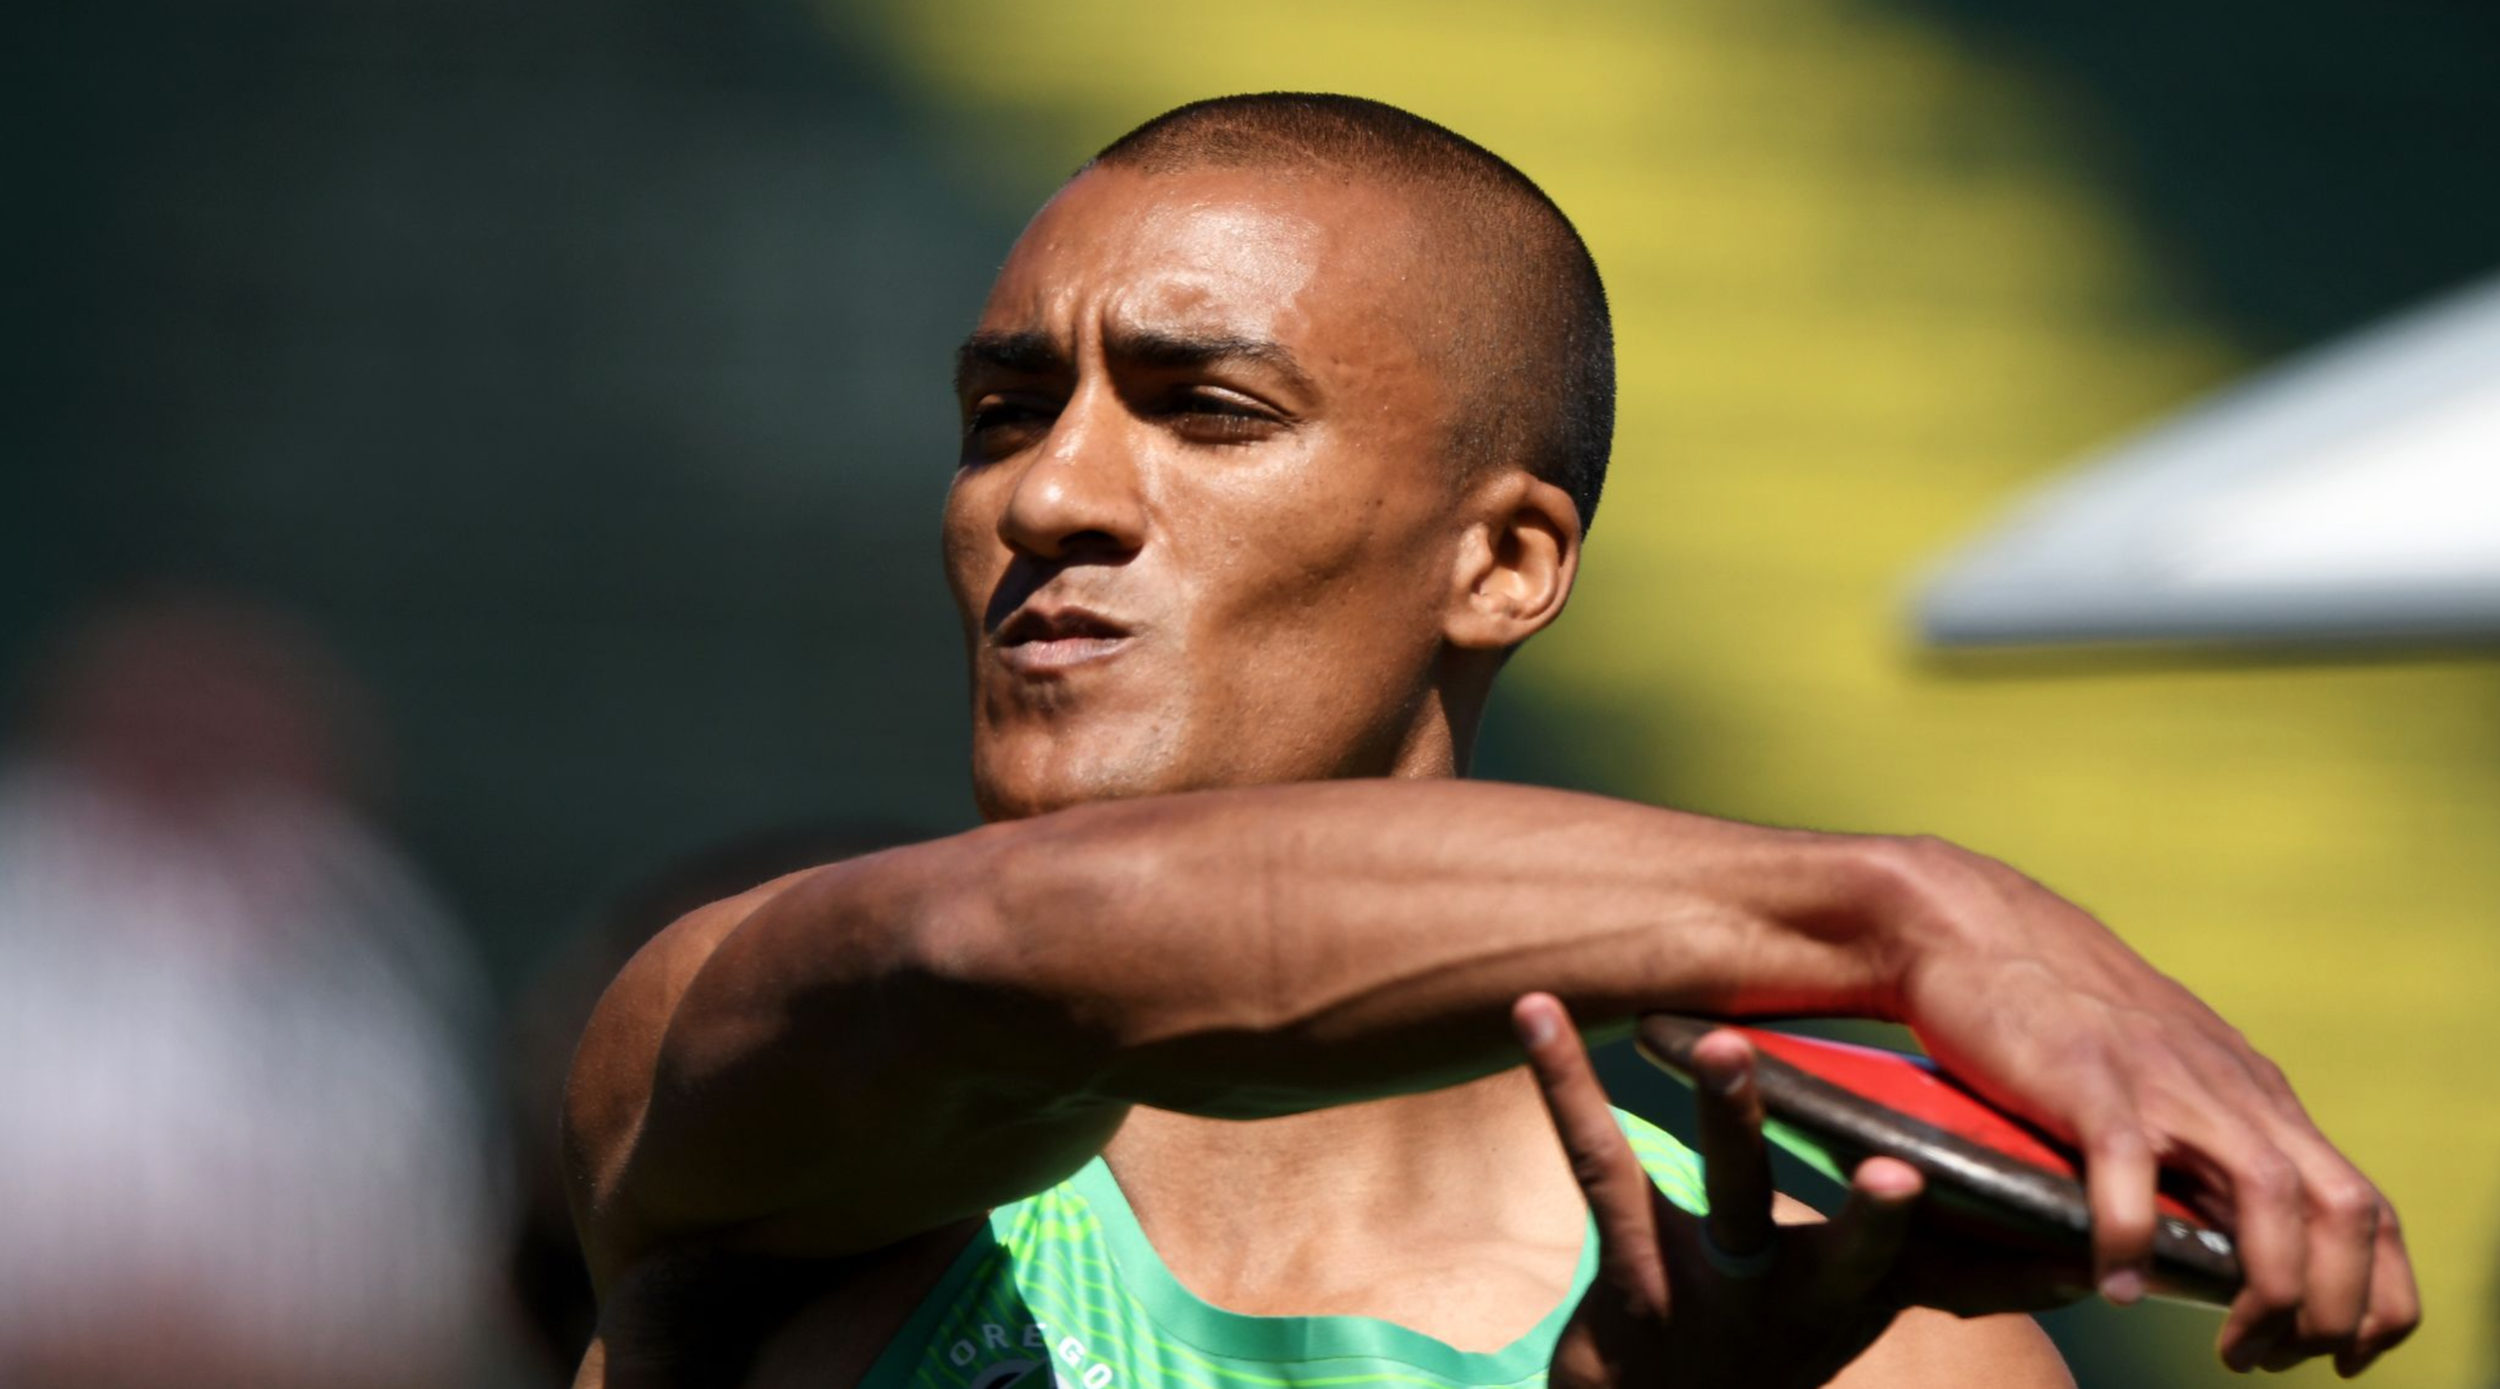 Ashton Eaton won his second straight decathlon title at trials and will look to defend his Olympic gold medal in the event in Rio.